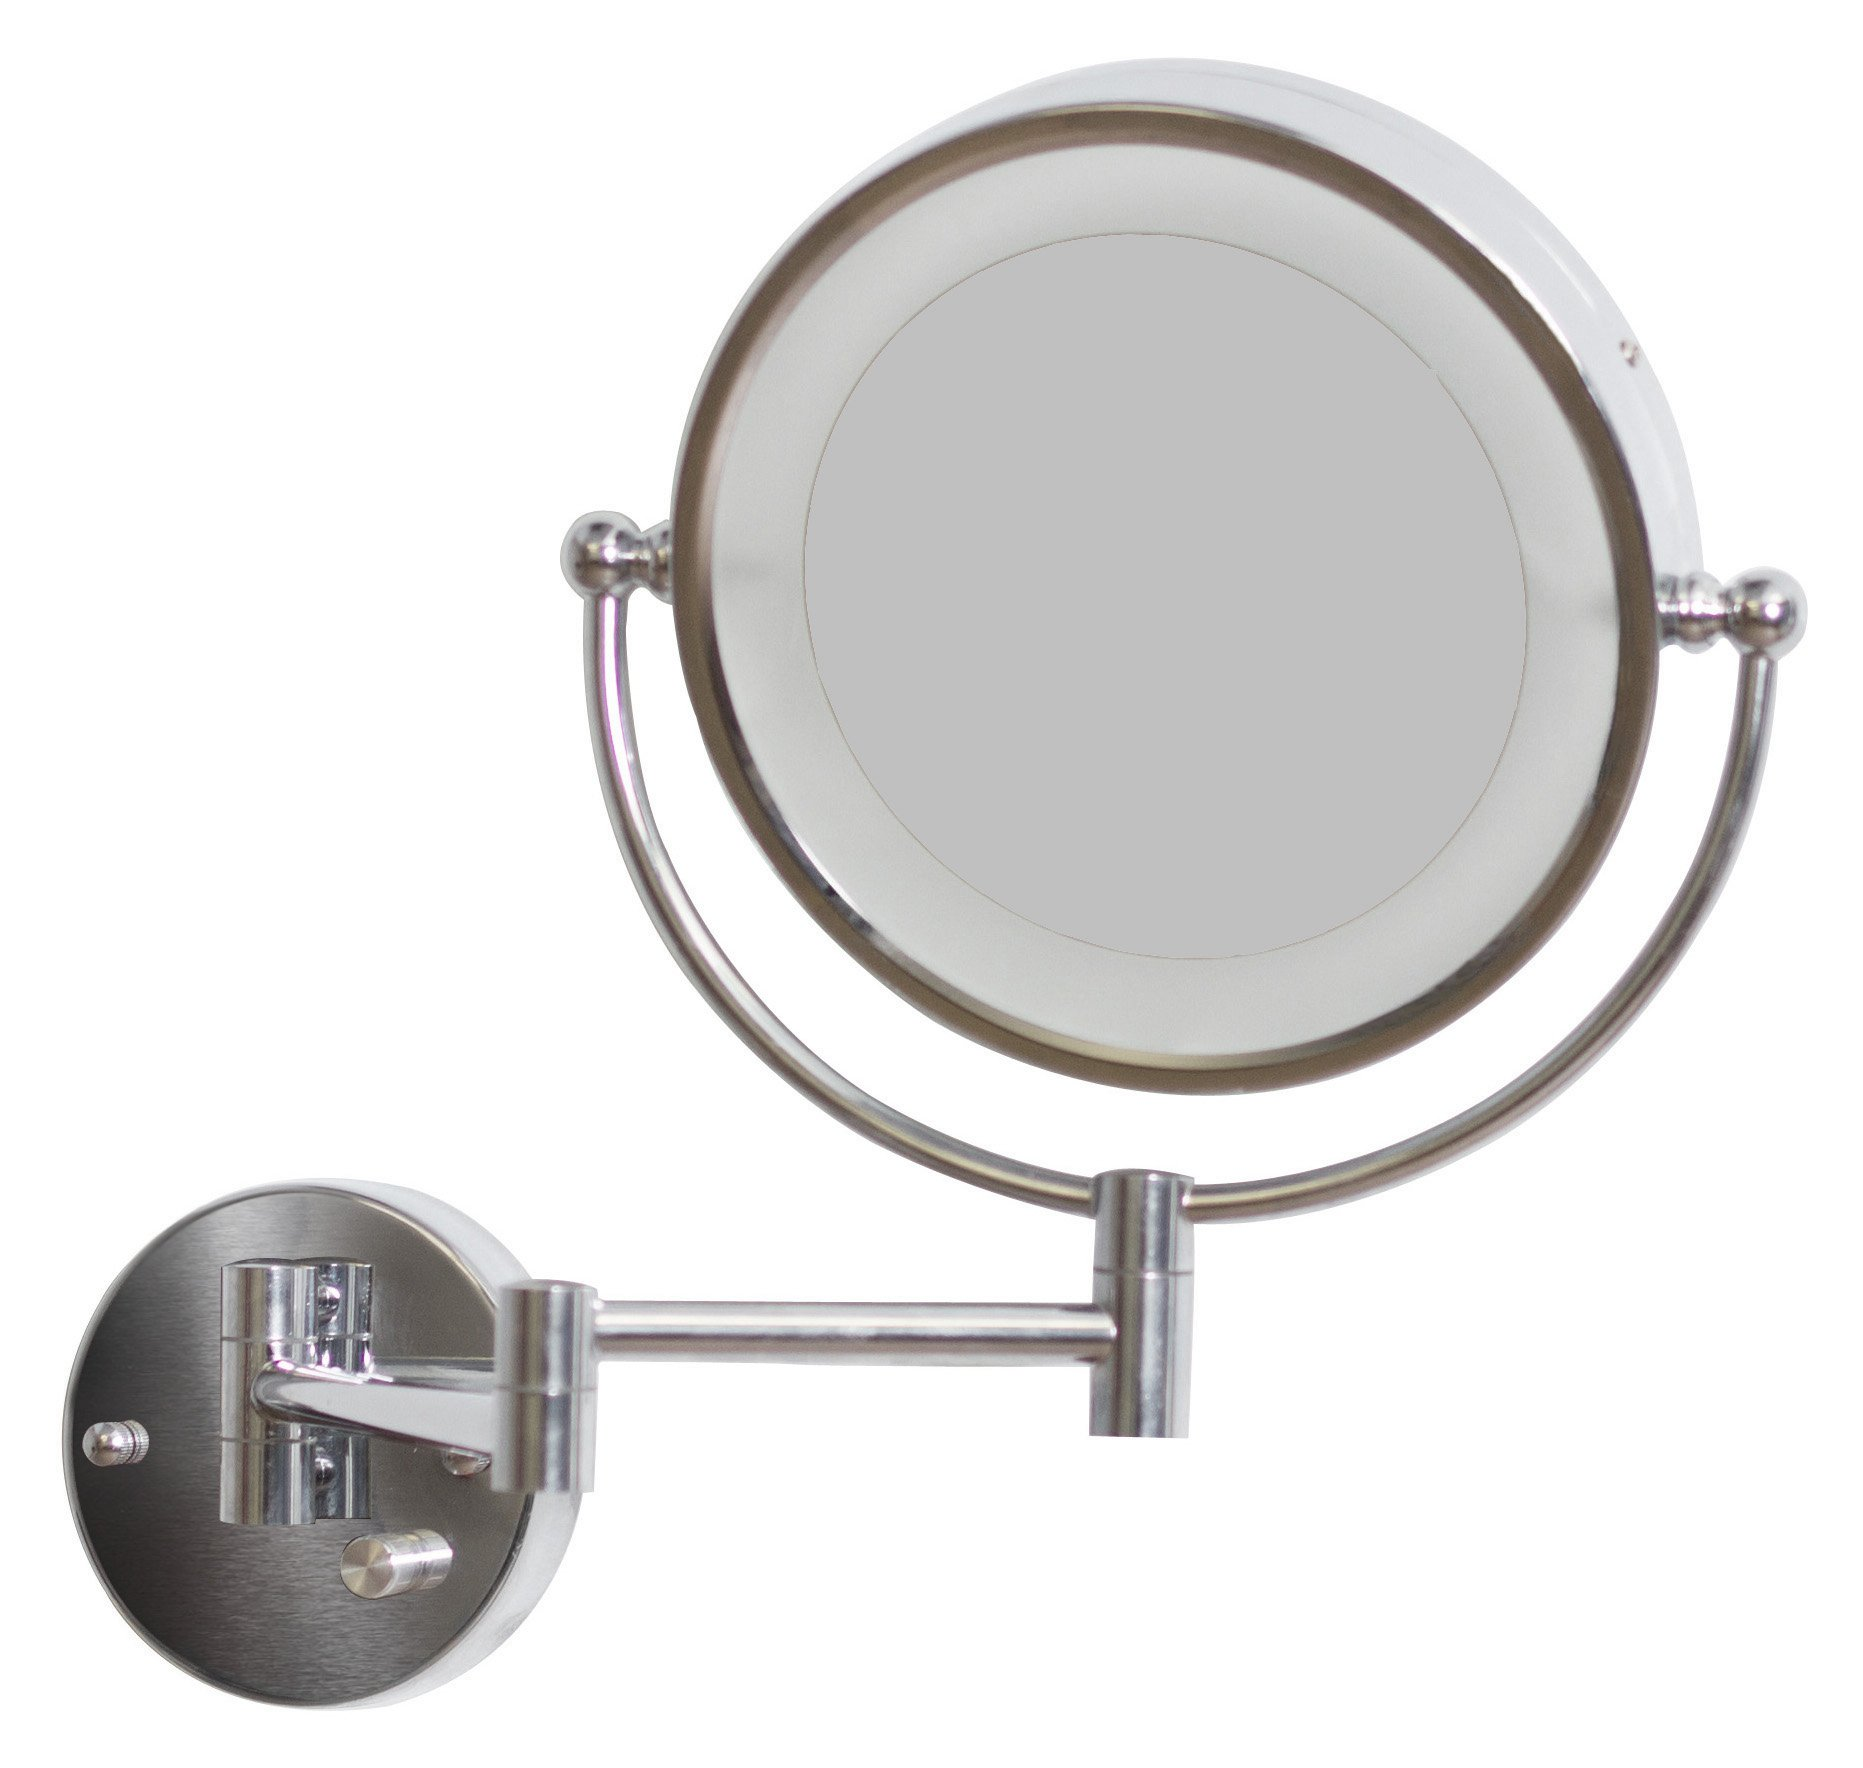 American Imaginations AI-557 8.5-in. W Round LED Mirror With Light Dimmer And Dual 1x/5x Zoom by American Imaginations